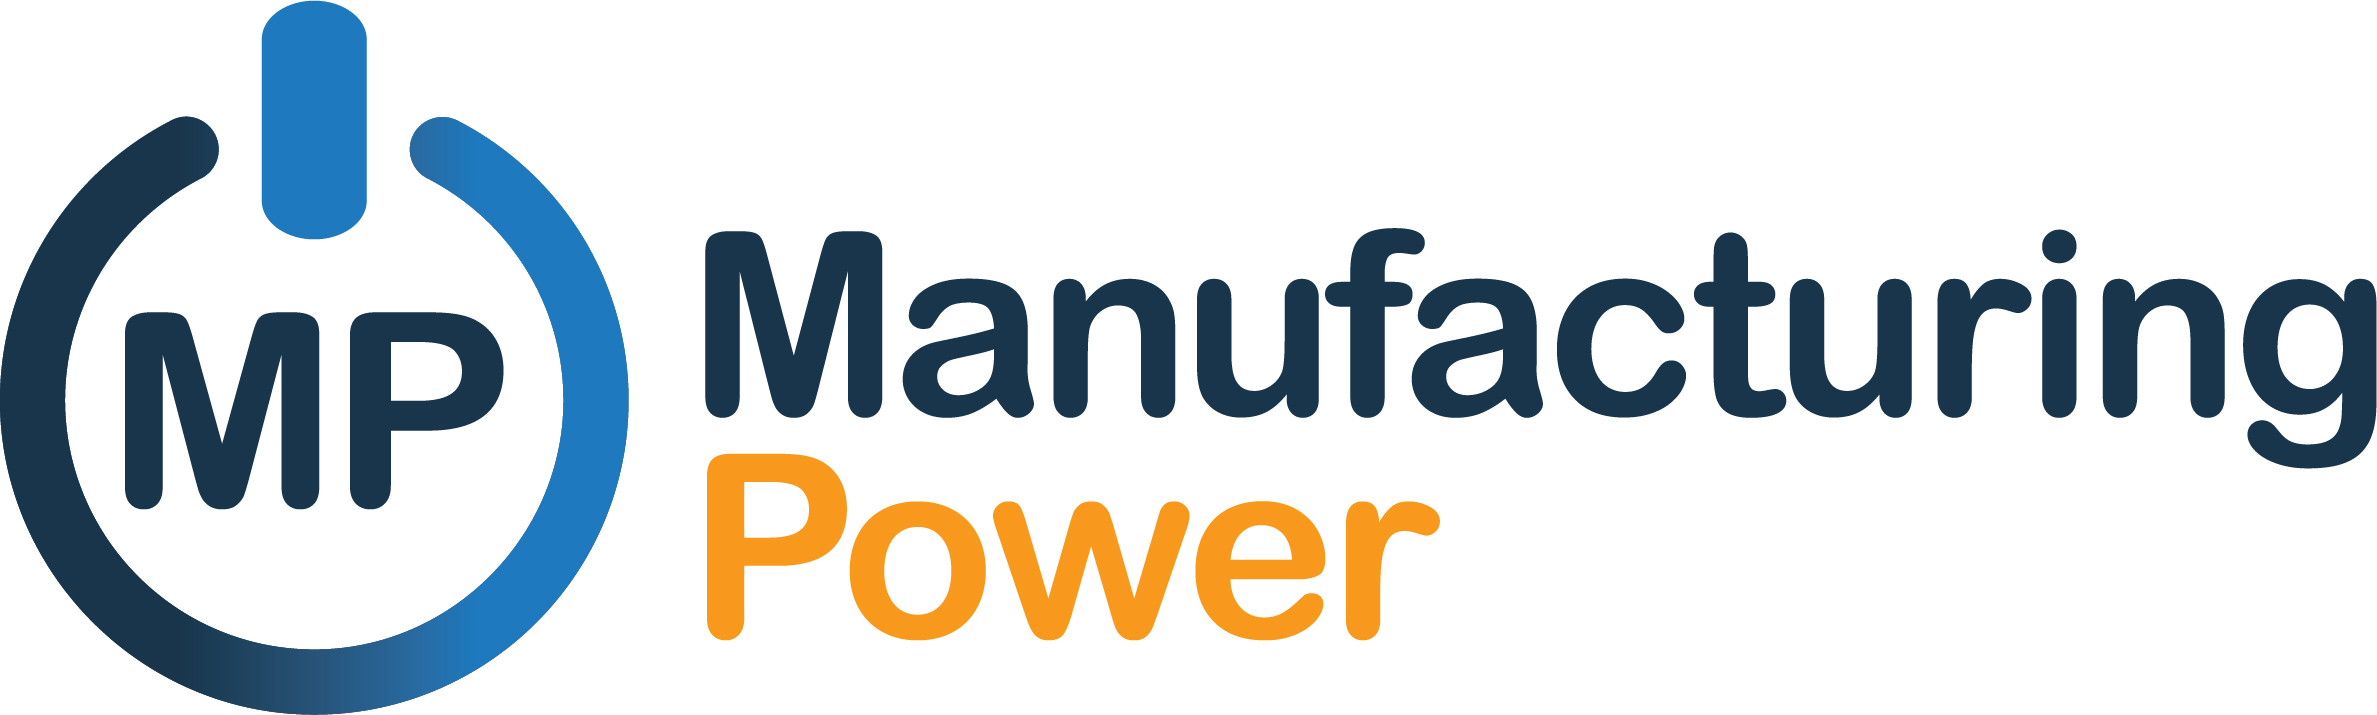 Small Manufacturers Automate Comparison Pricing According to Mike Franz of ManufacturingPower